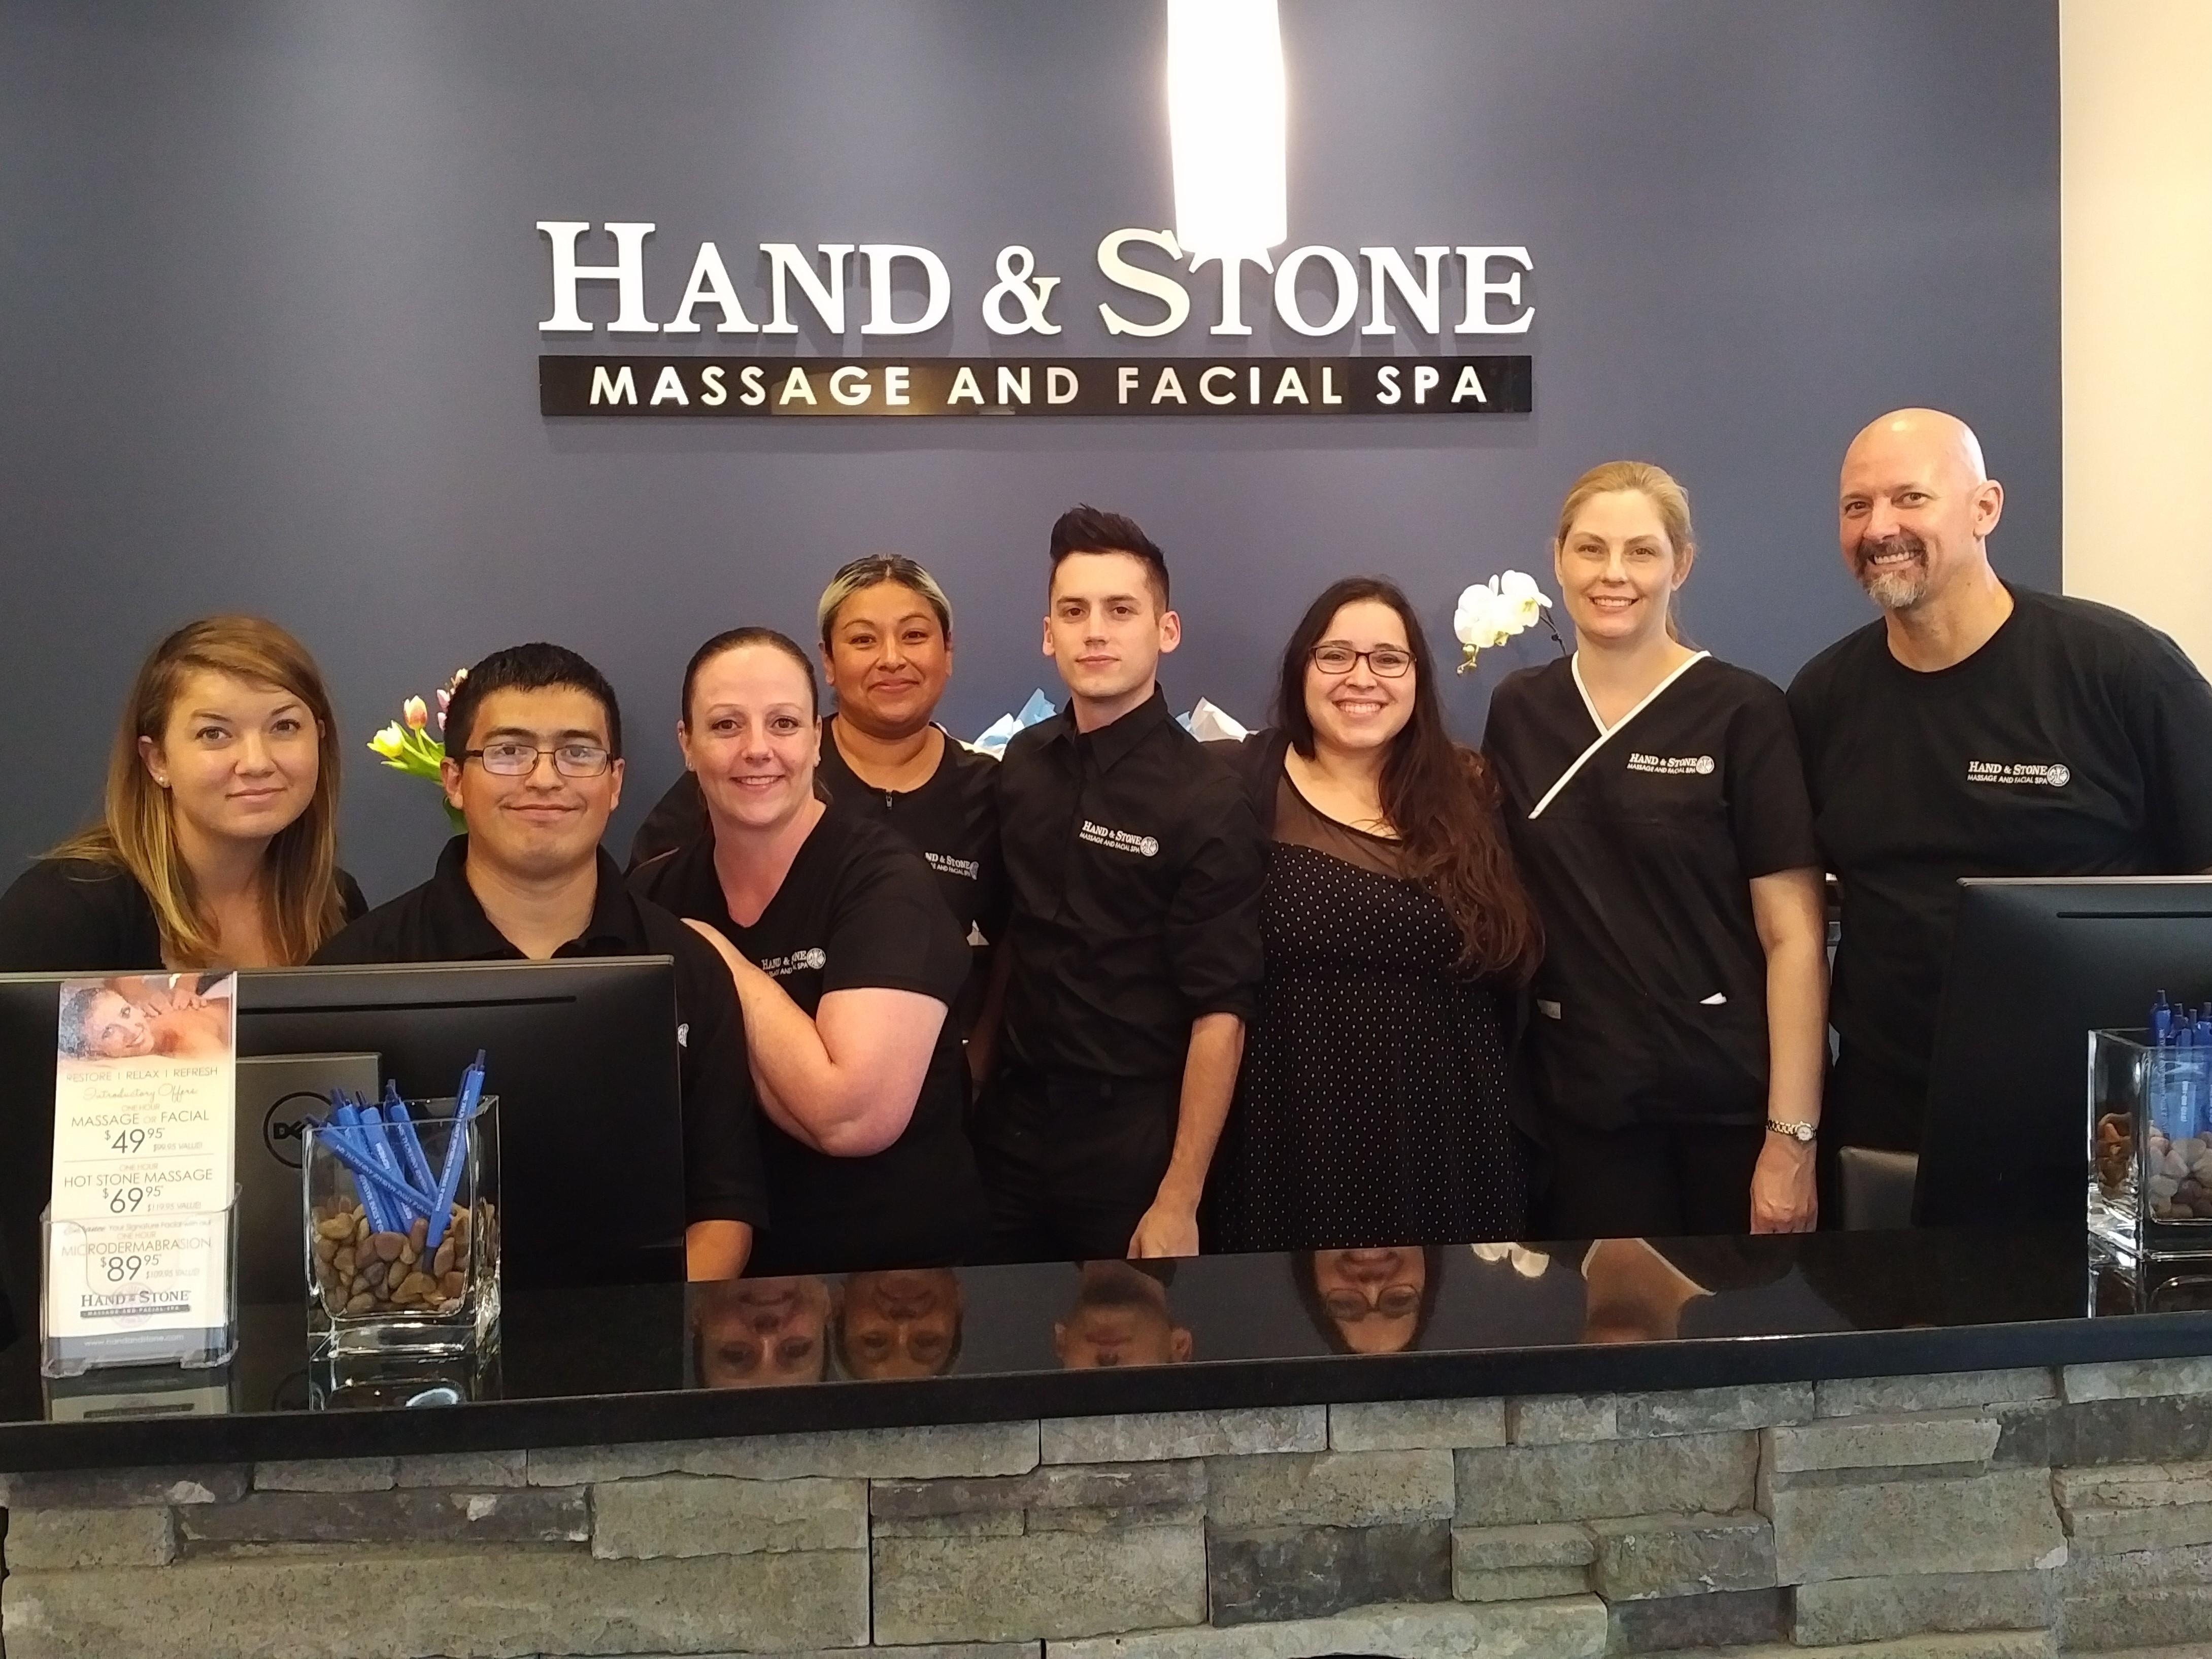 A few of Hand & Stone Team members ready to serve you.